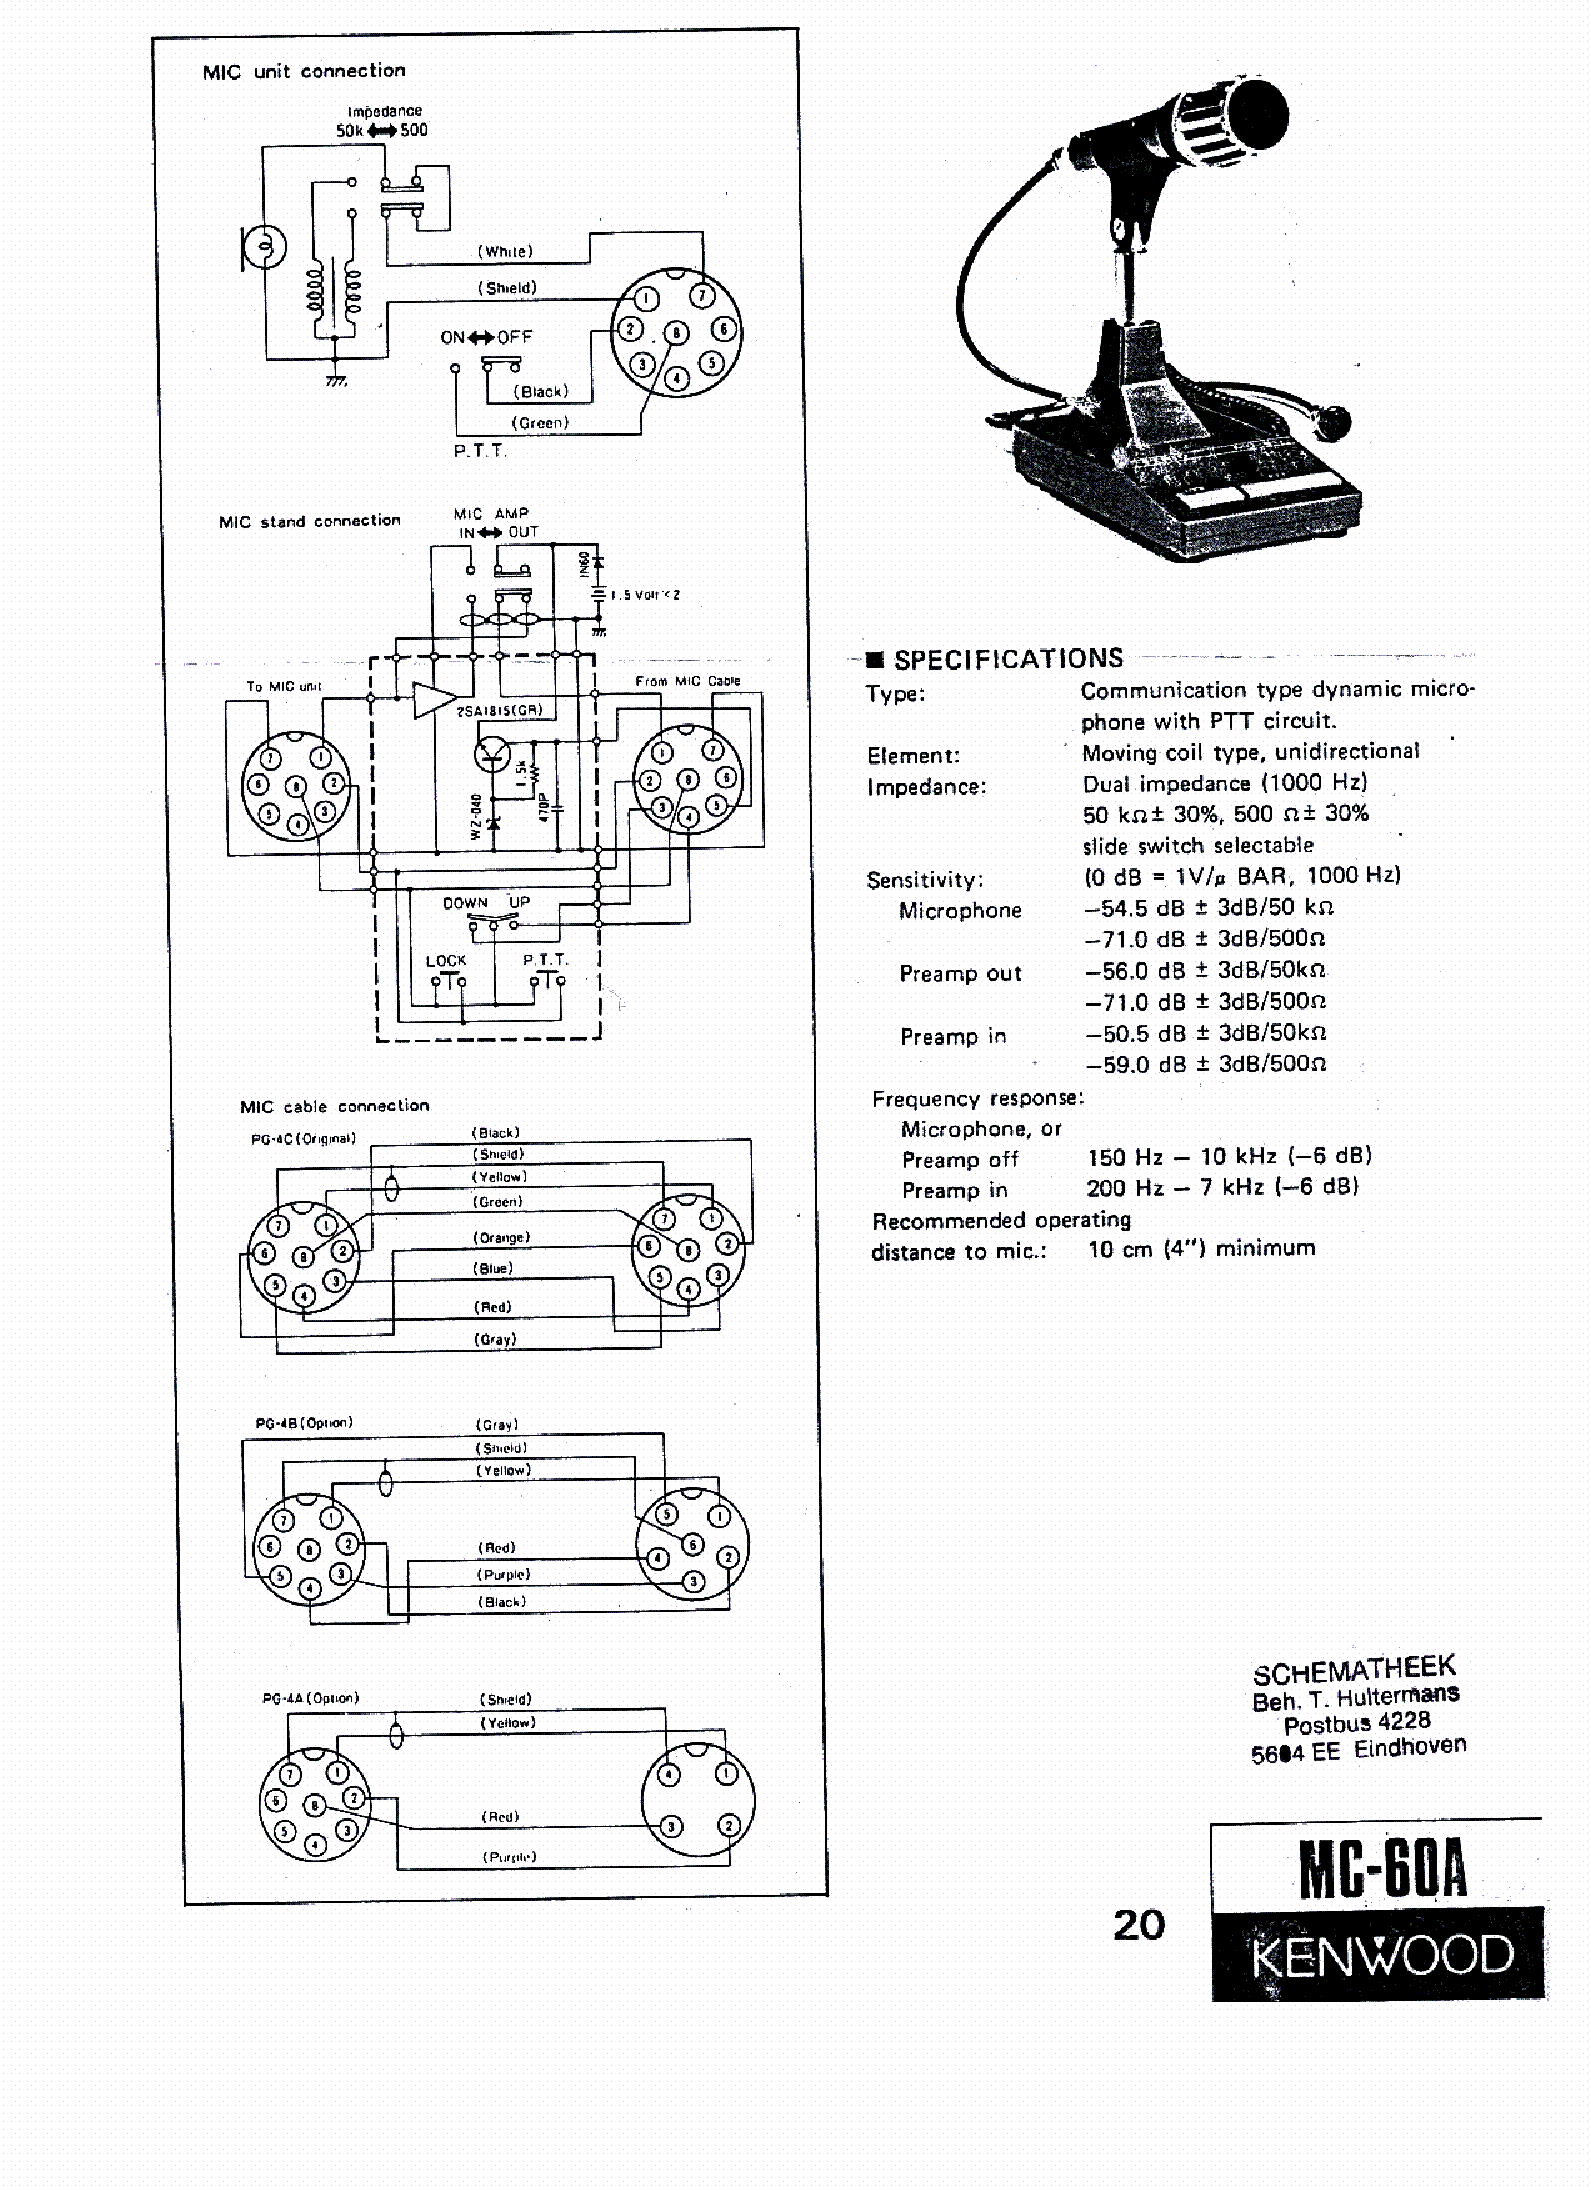 Kenwood Mc 60a Sch Service Manual Download Schematics